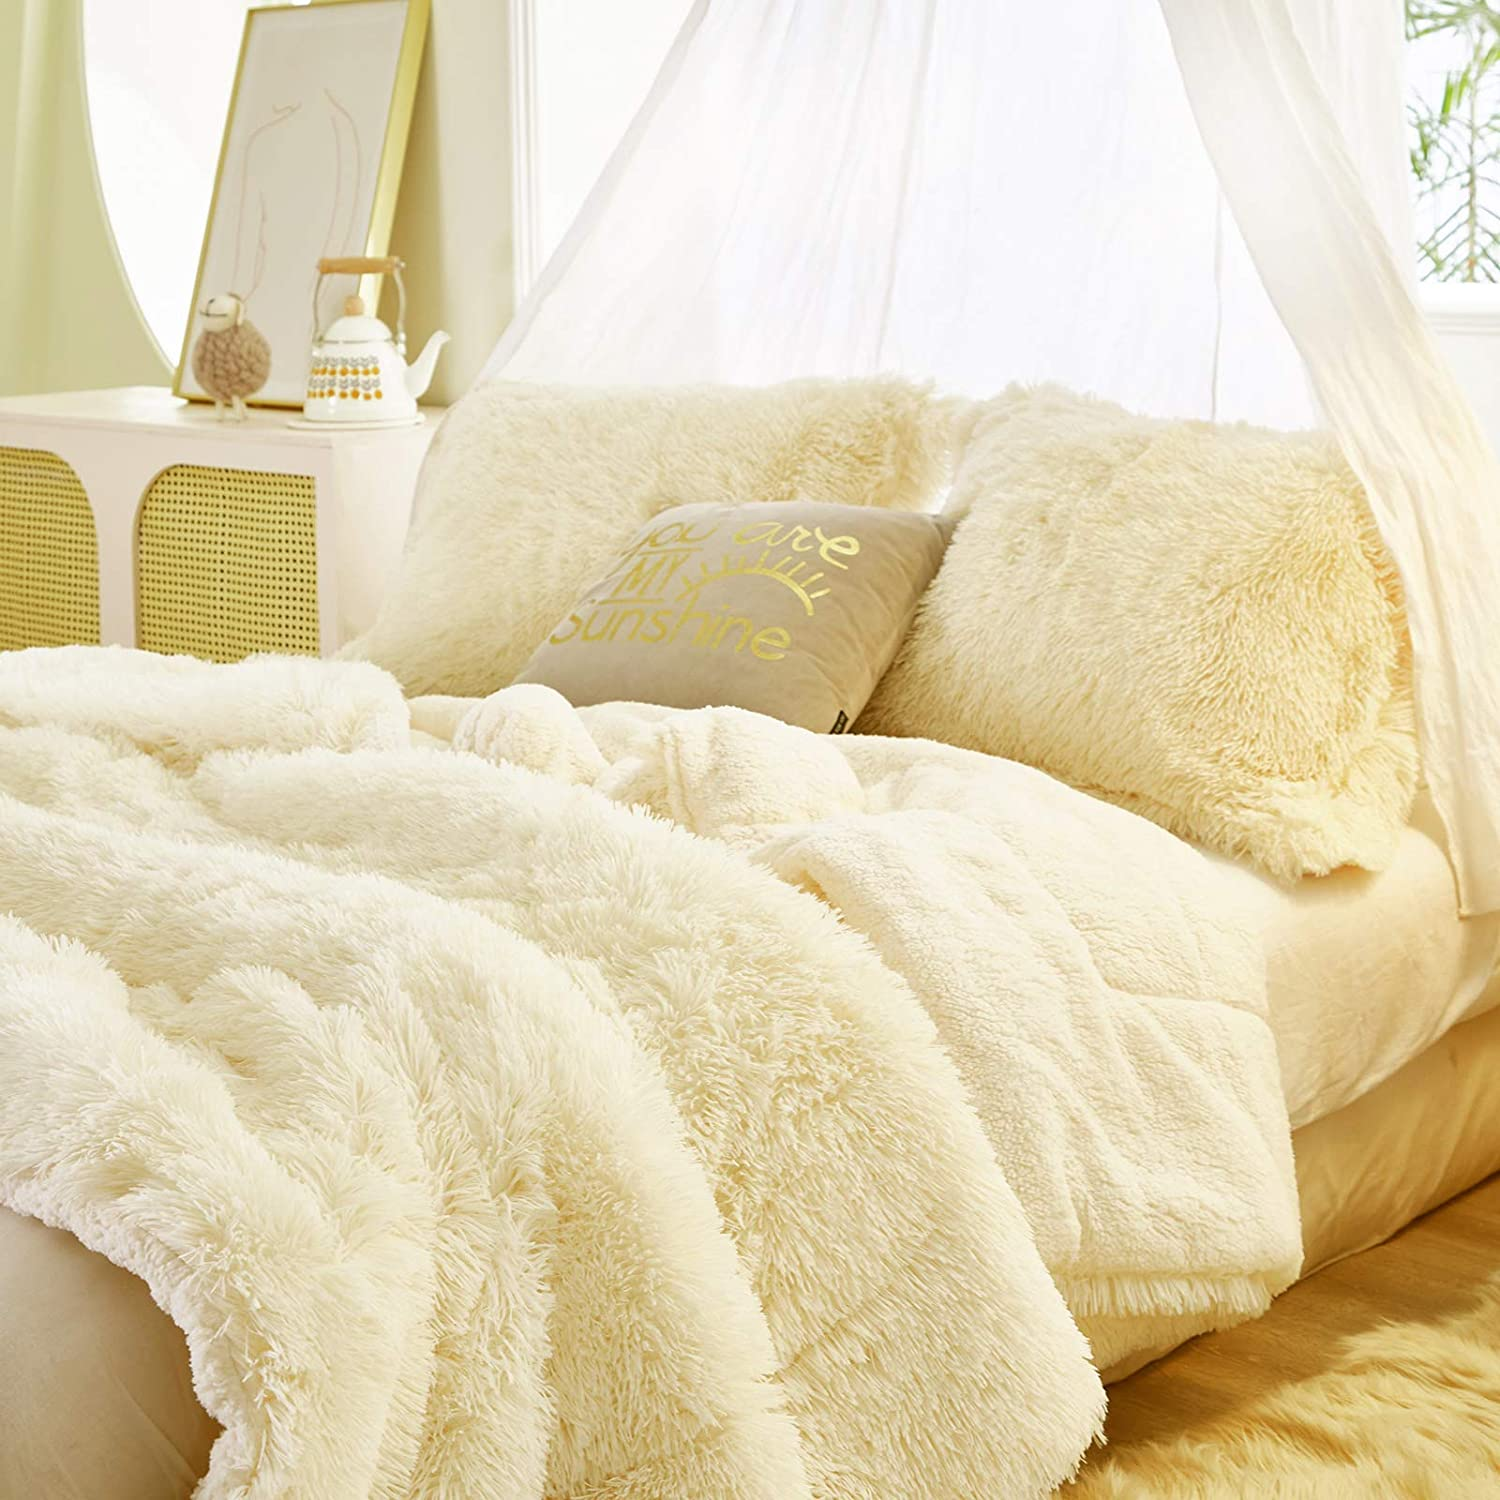 Farmhouse Home Decor Faux Sheekpskin Bedding Weighted Double Sided Fur Ivory Bedroom Accents Cream TWIN Vegan Faux Fur Blanket Comforter